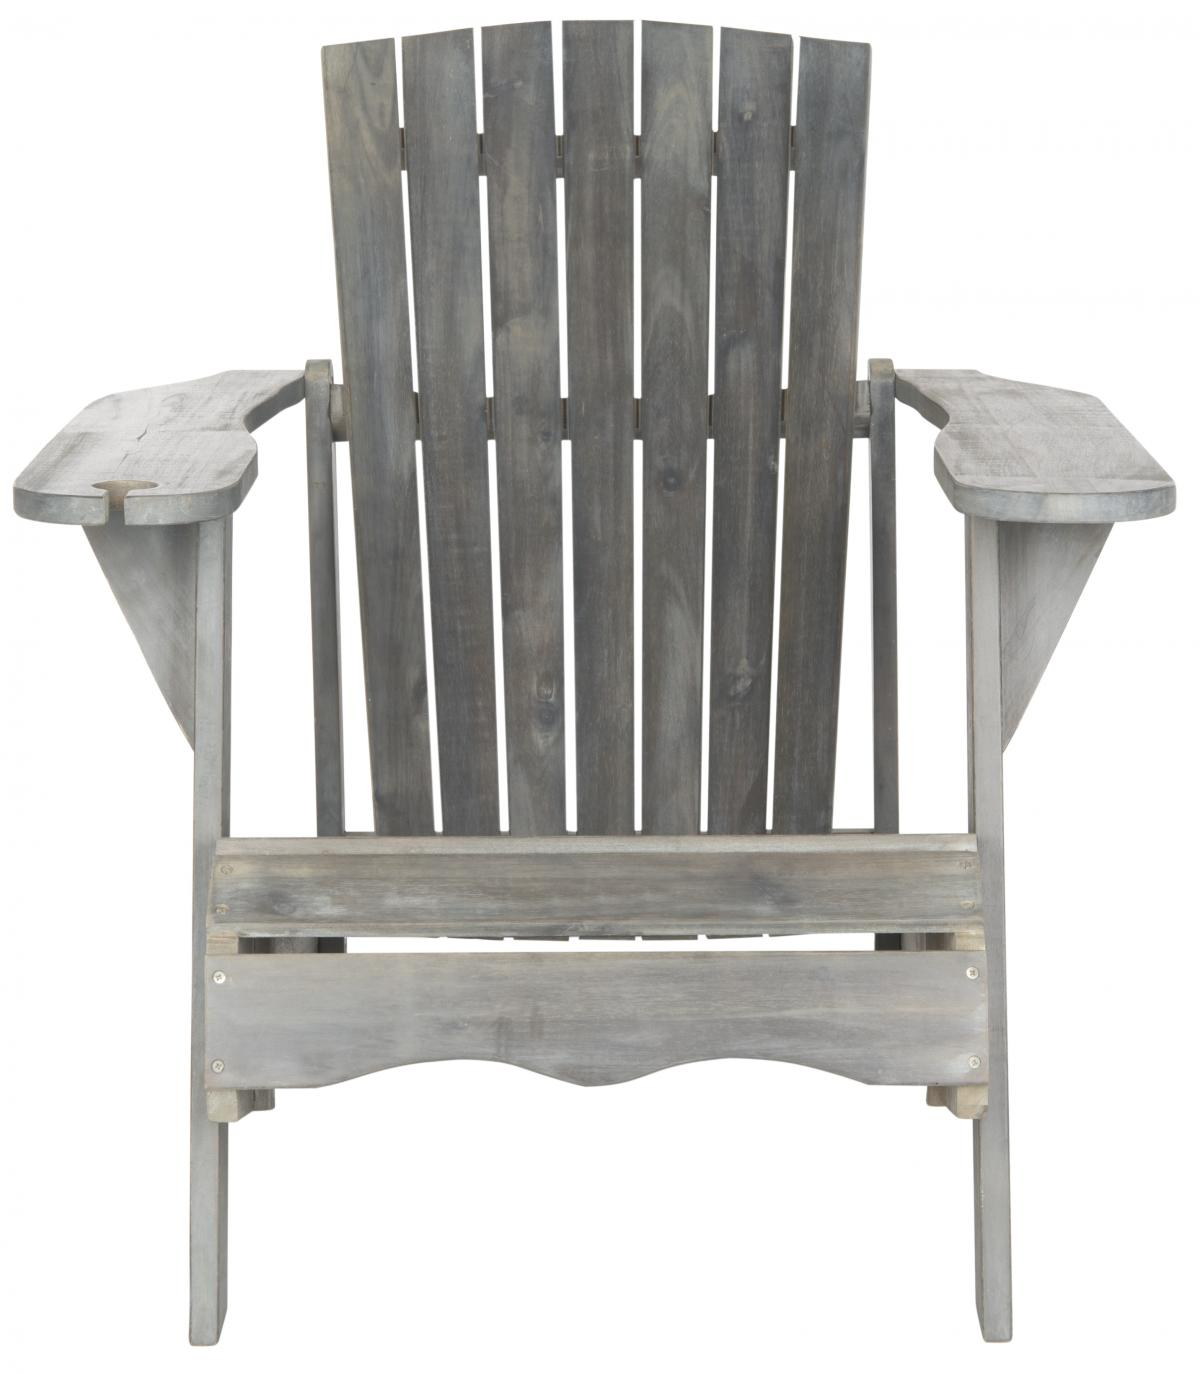 metal adirondack chairs revolving chair for home pat6727b furniture by safavieh